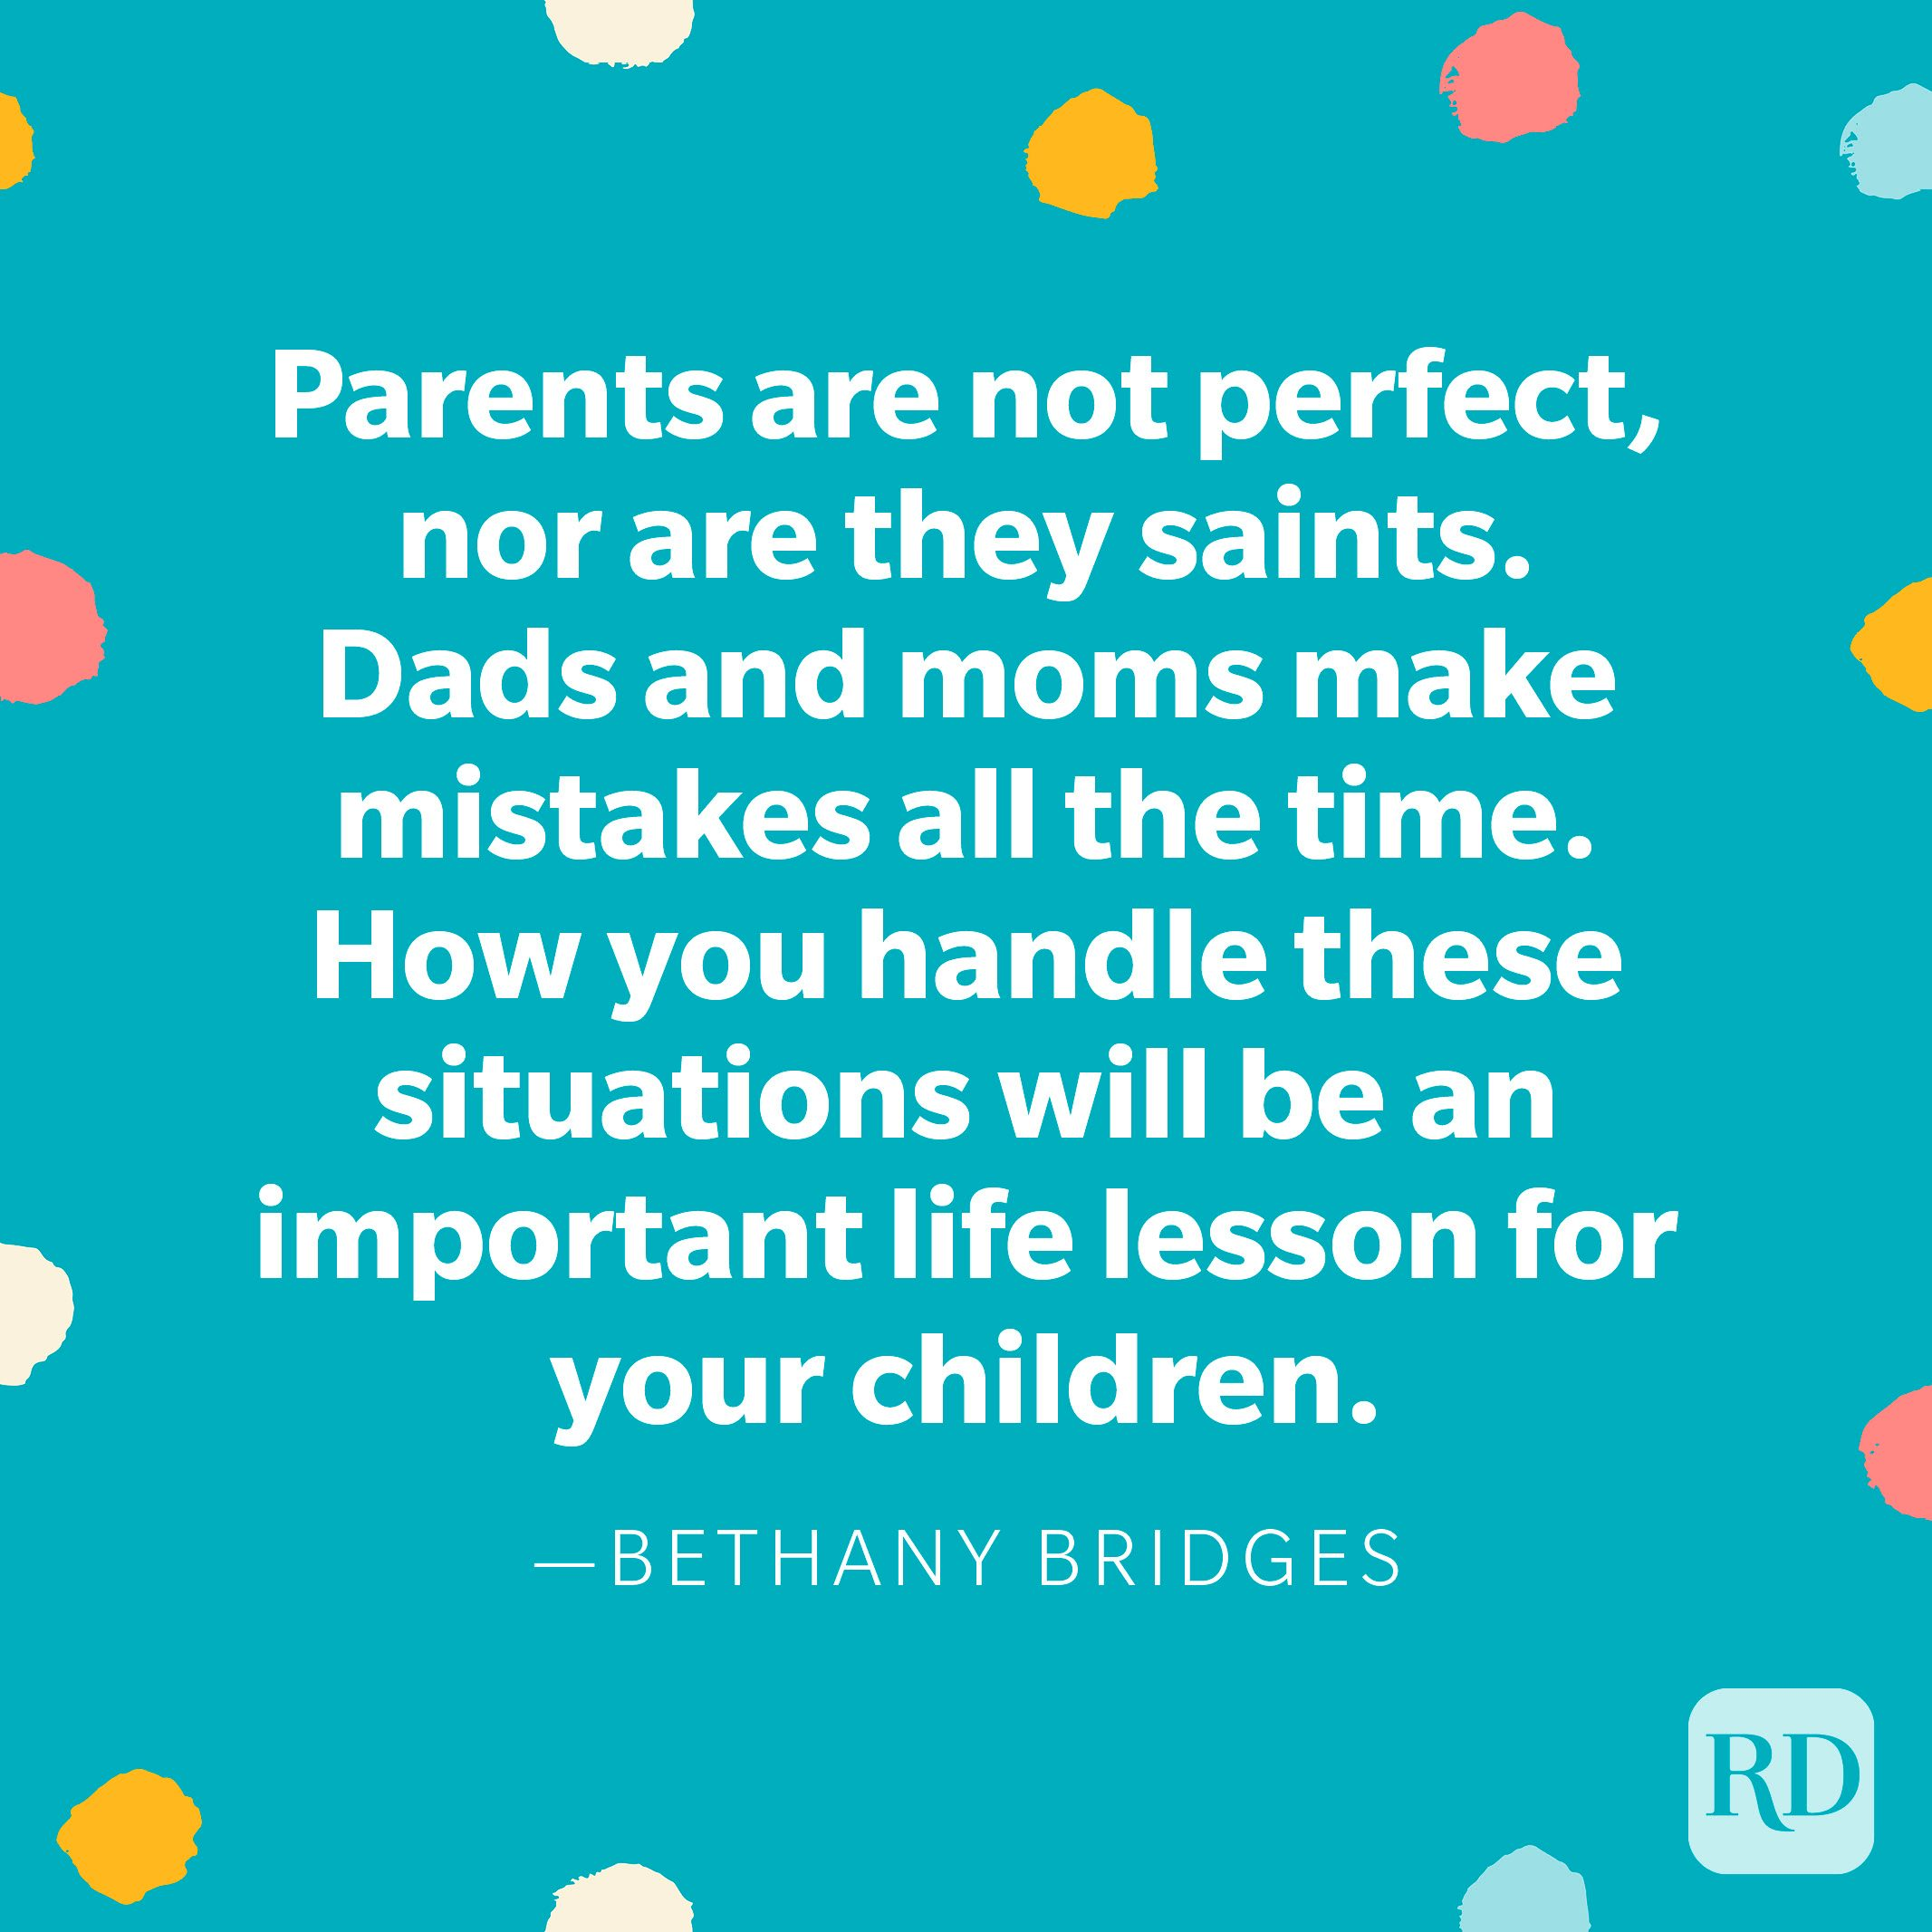 """""""Parents are not perfect, nor are they saints. Dads and moms make mistakes all the time. How you handle these situations will be an important life lesson for your children."""" — Bethany Bridges"""